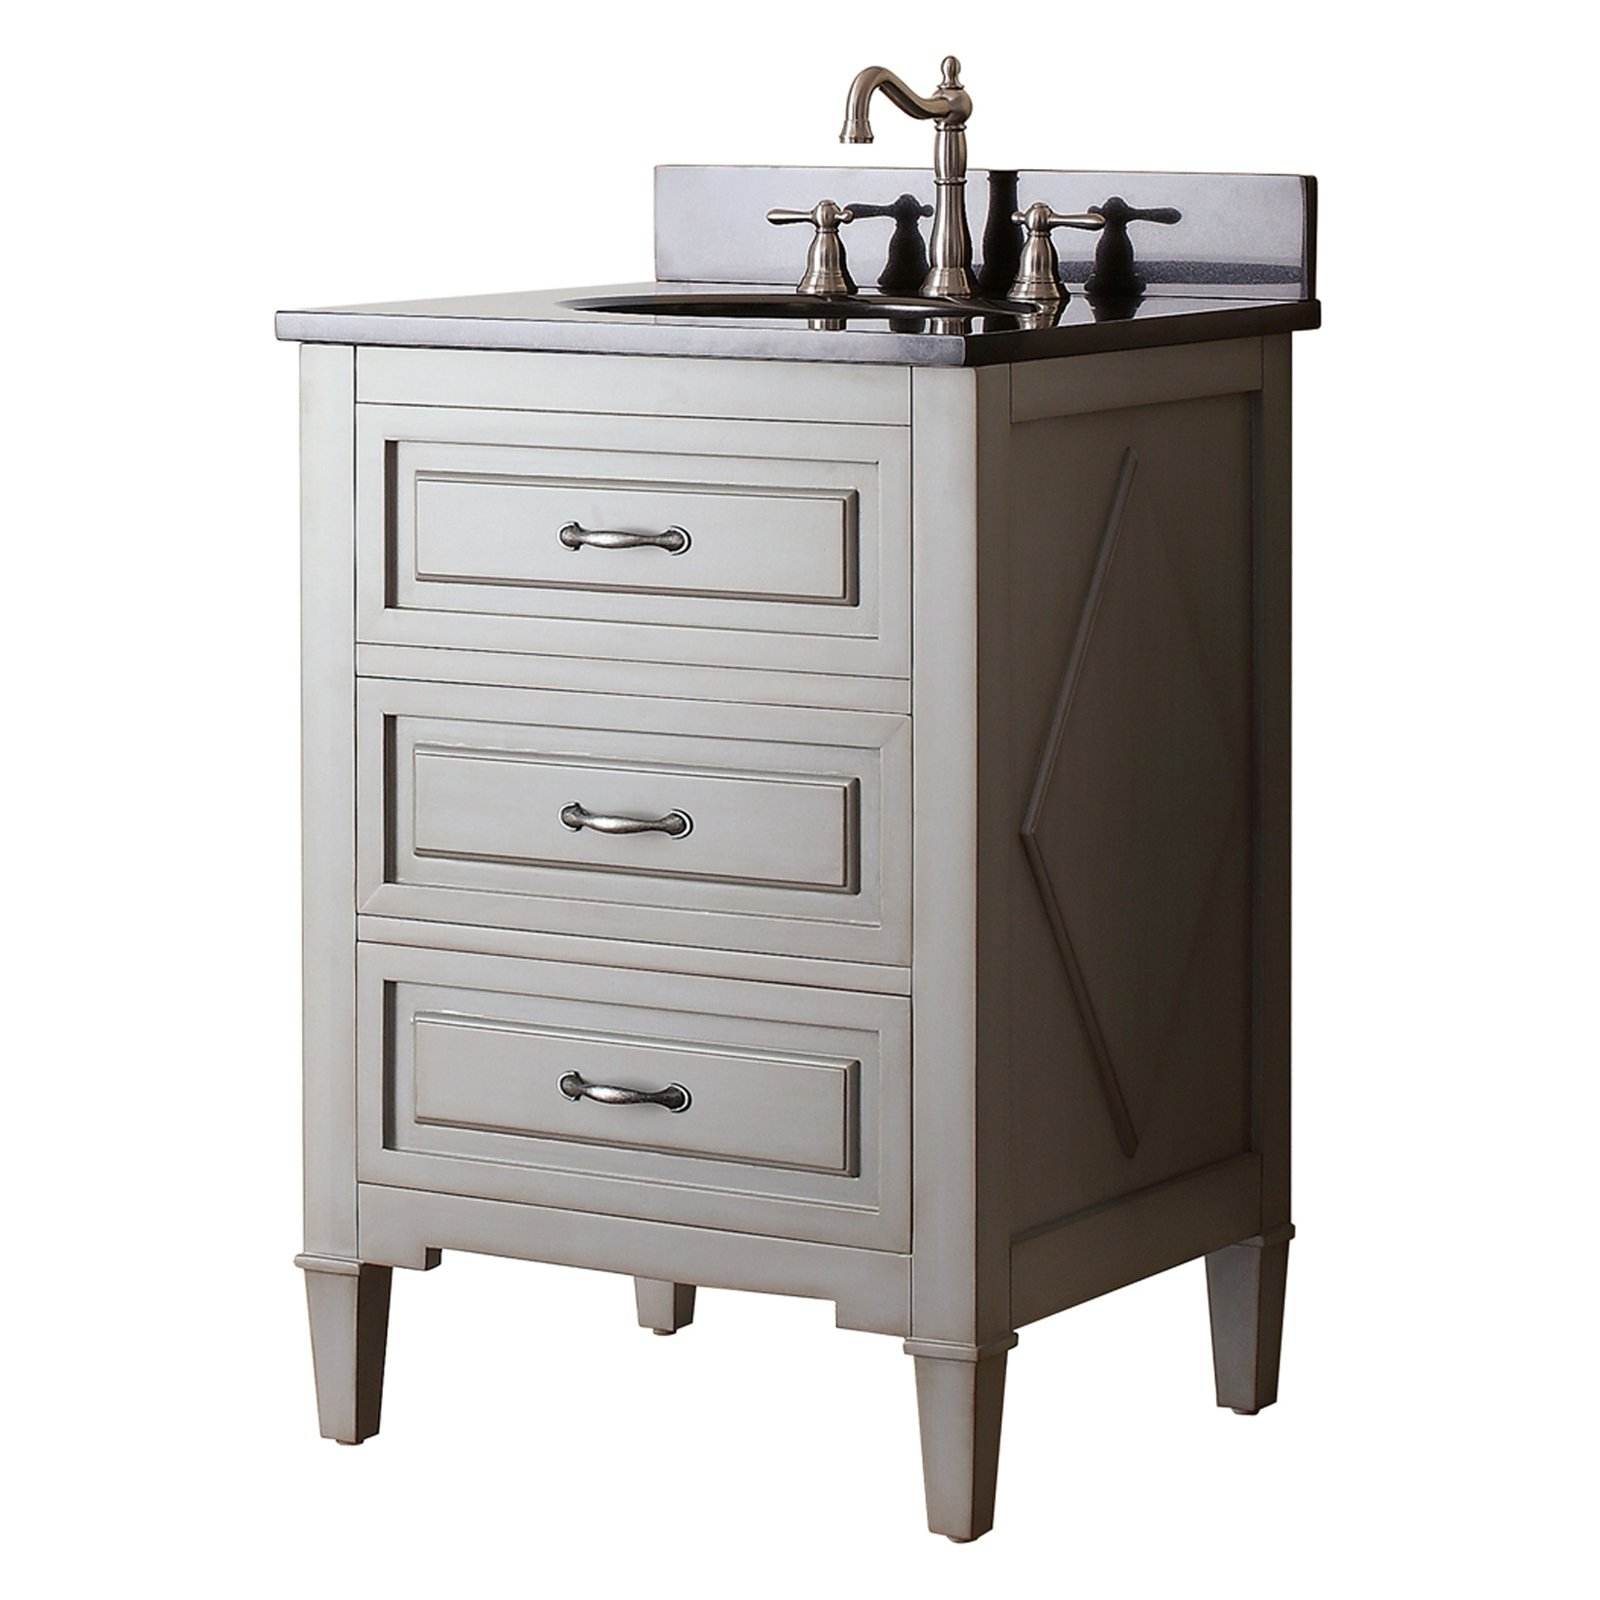 26 Inch Bathroom Vanity With Sink